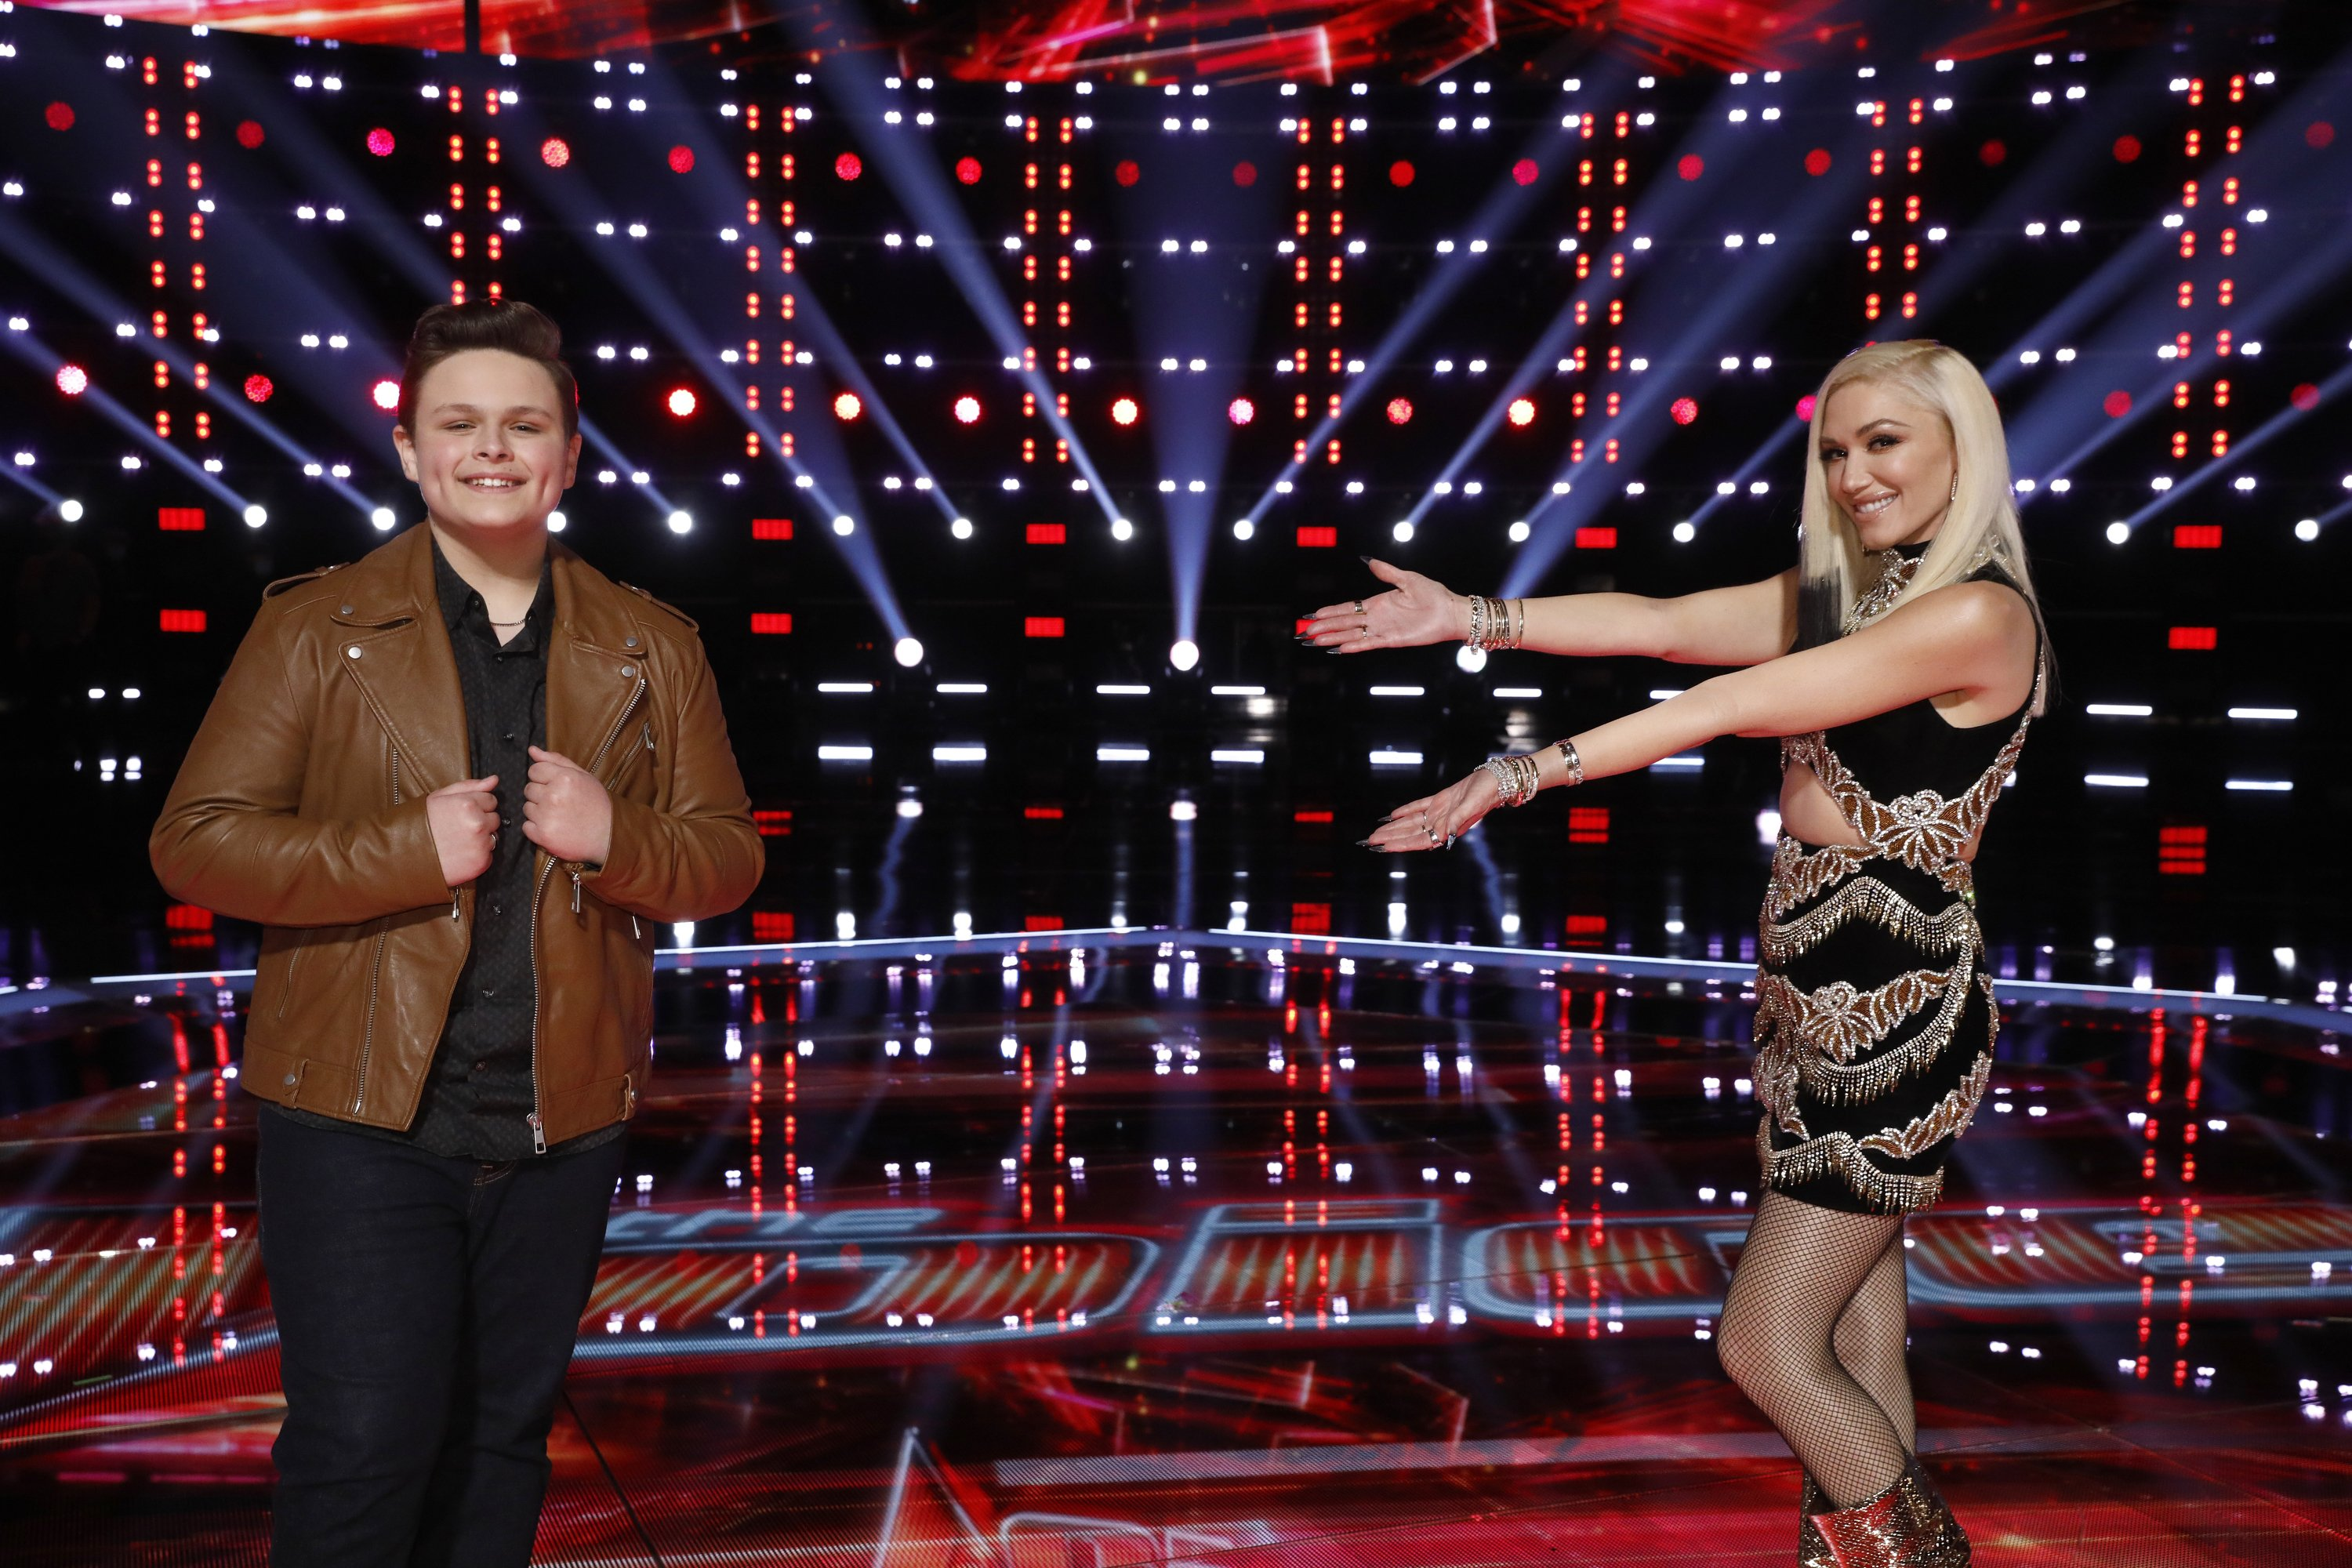 """""""Live Top 9 Results"""" episode on season 19 of """"The Voice"""" with Carter Rubin and Gwen Stefani.   Source: Getty Images."""